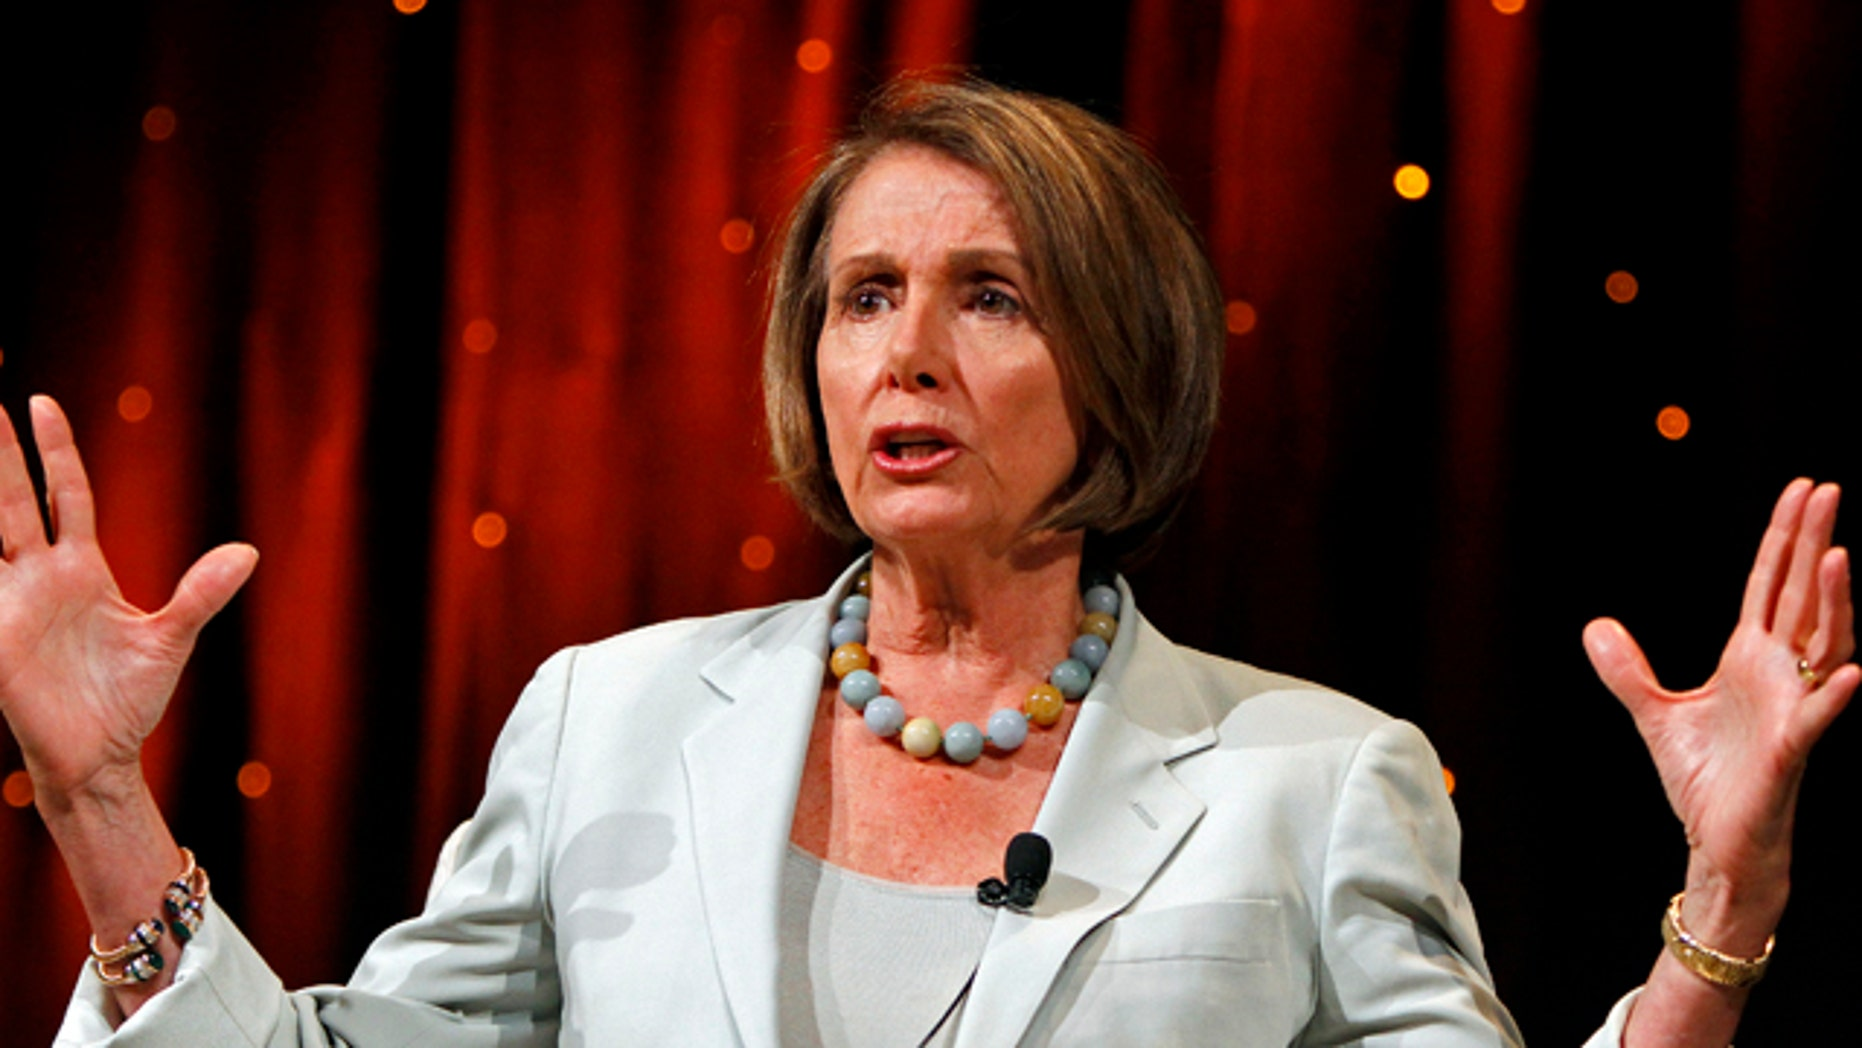 June 24: House Speaker Nancy Pelosi, D-Calif., answers questions during the Netroots Nation convention in Las Vegas.